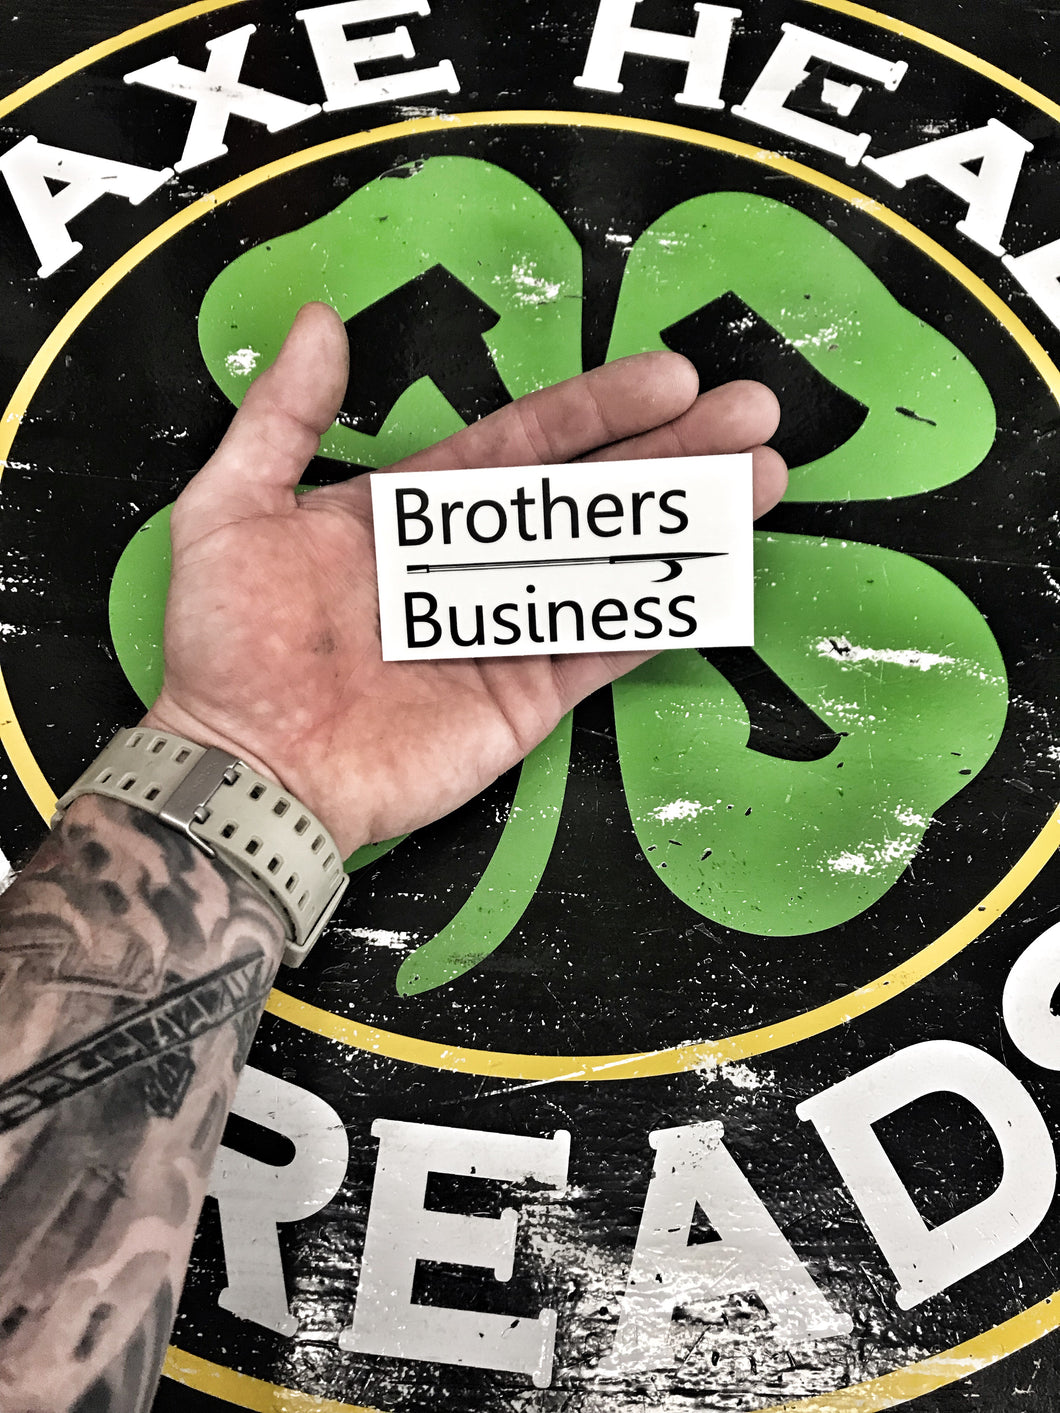 Brothers OVER Business Sticker Decal